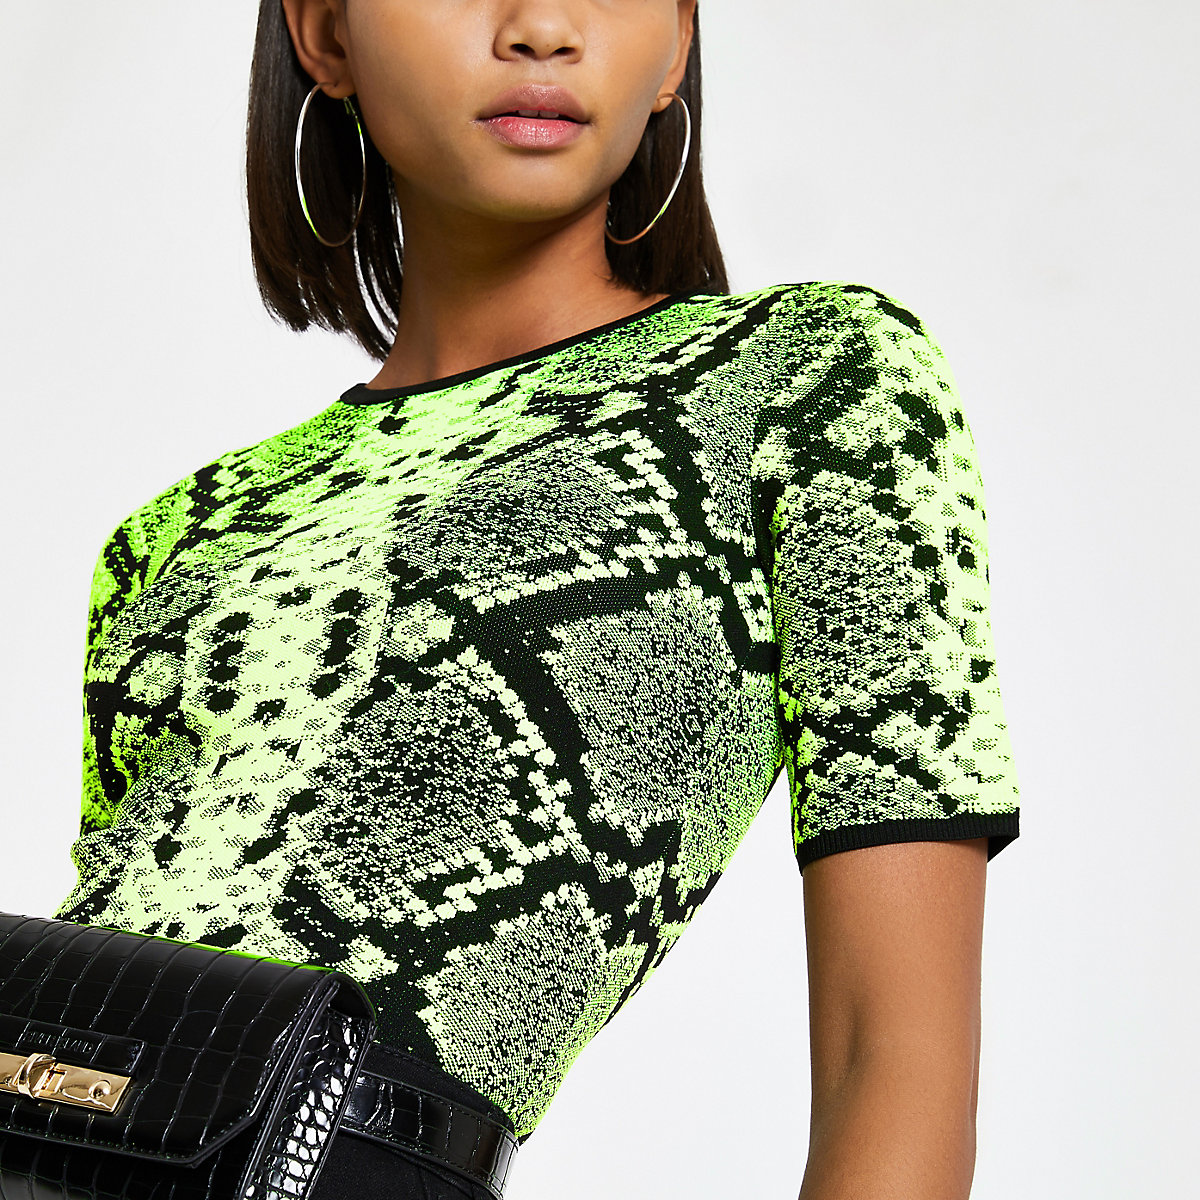 Neon green snake print knitted T-shirt